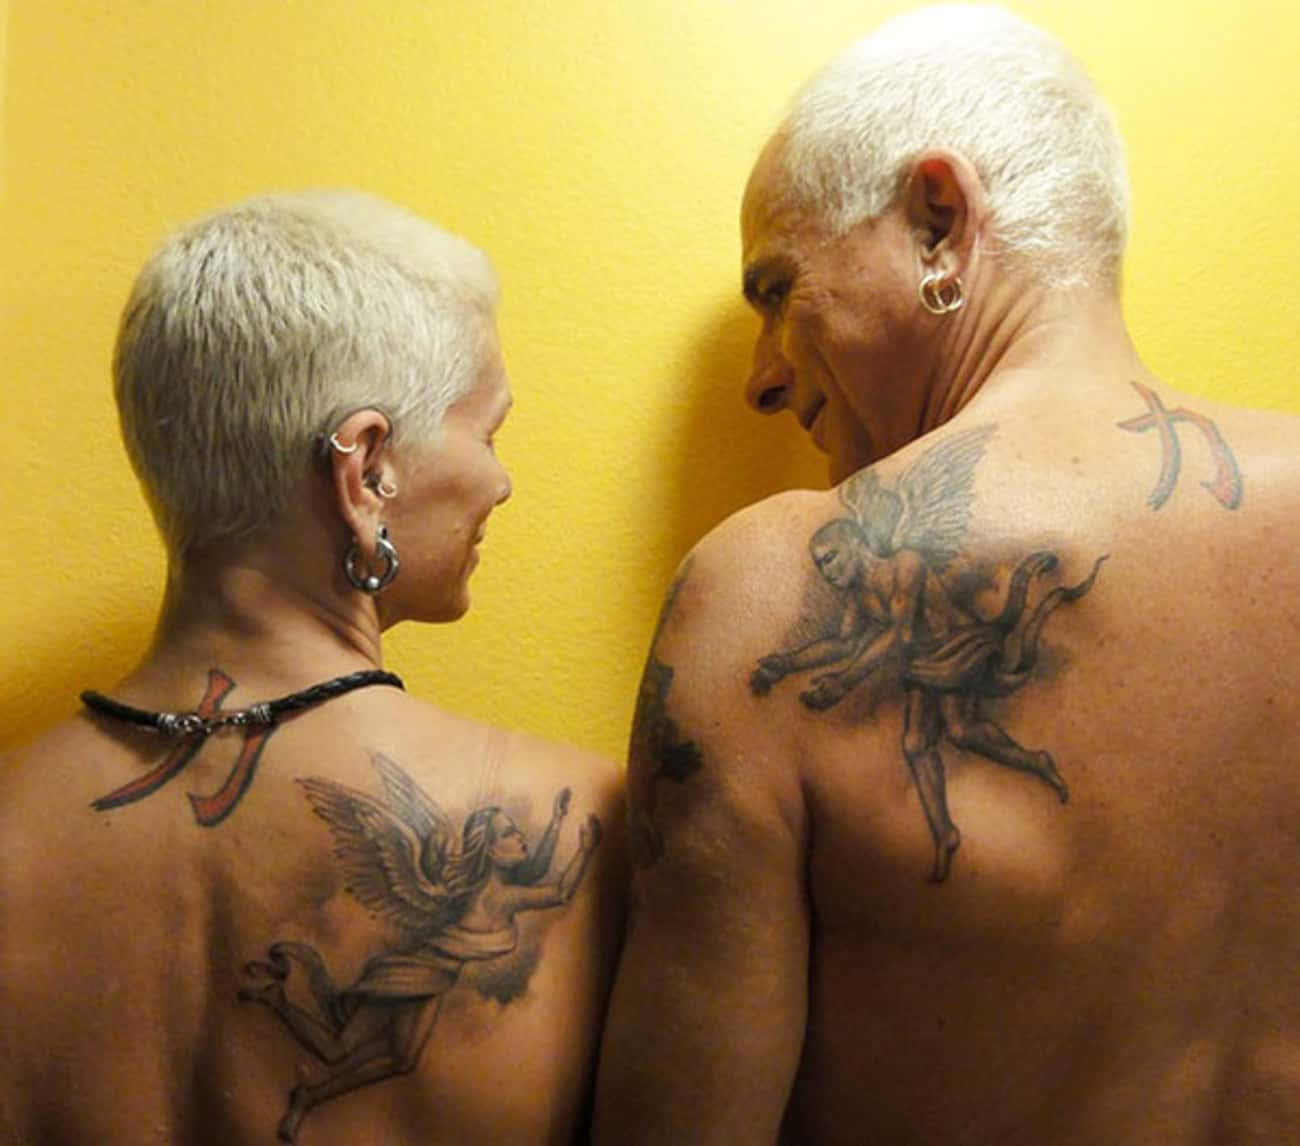 True Love Can Be Told With Ink is listed (or ranked) 3 on the list 18 Cool Older People With Tattoos